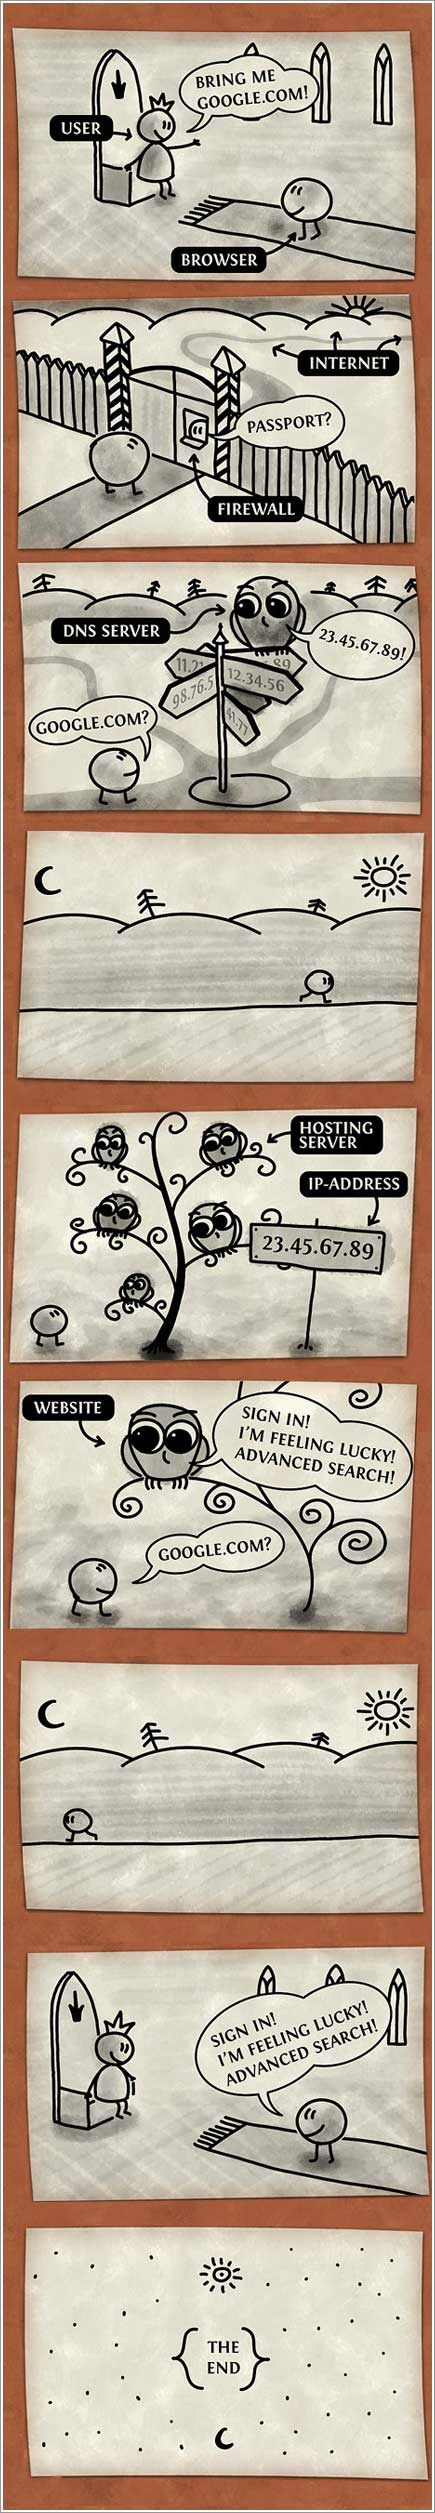 How a Browser Works Comic